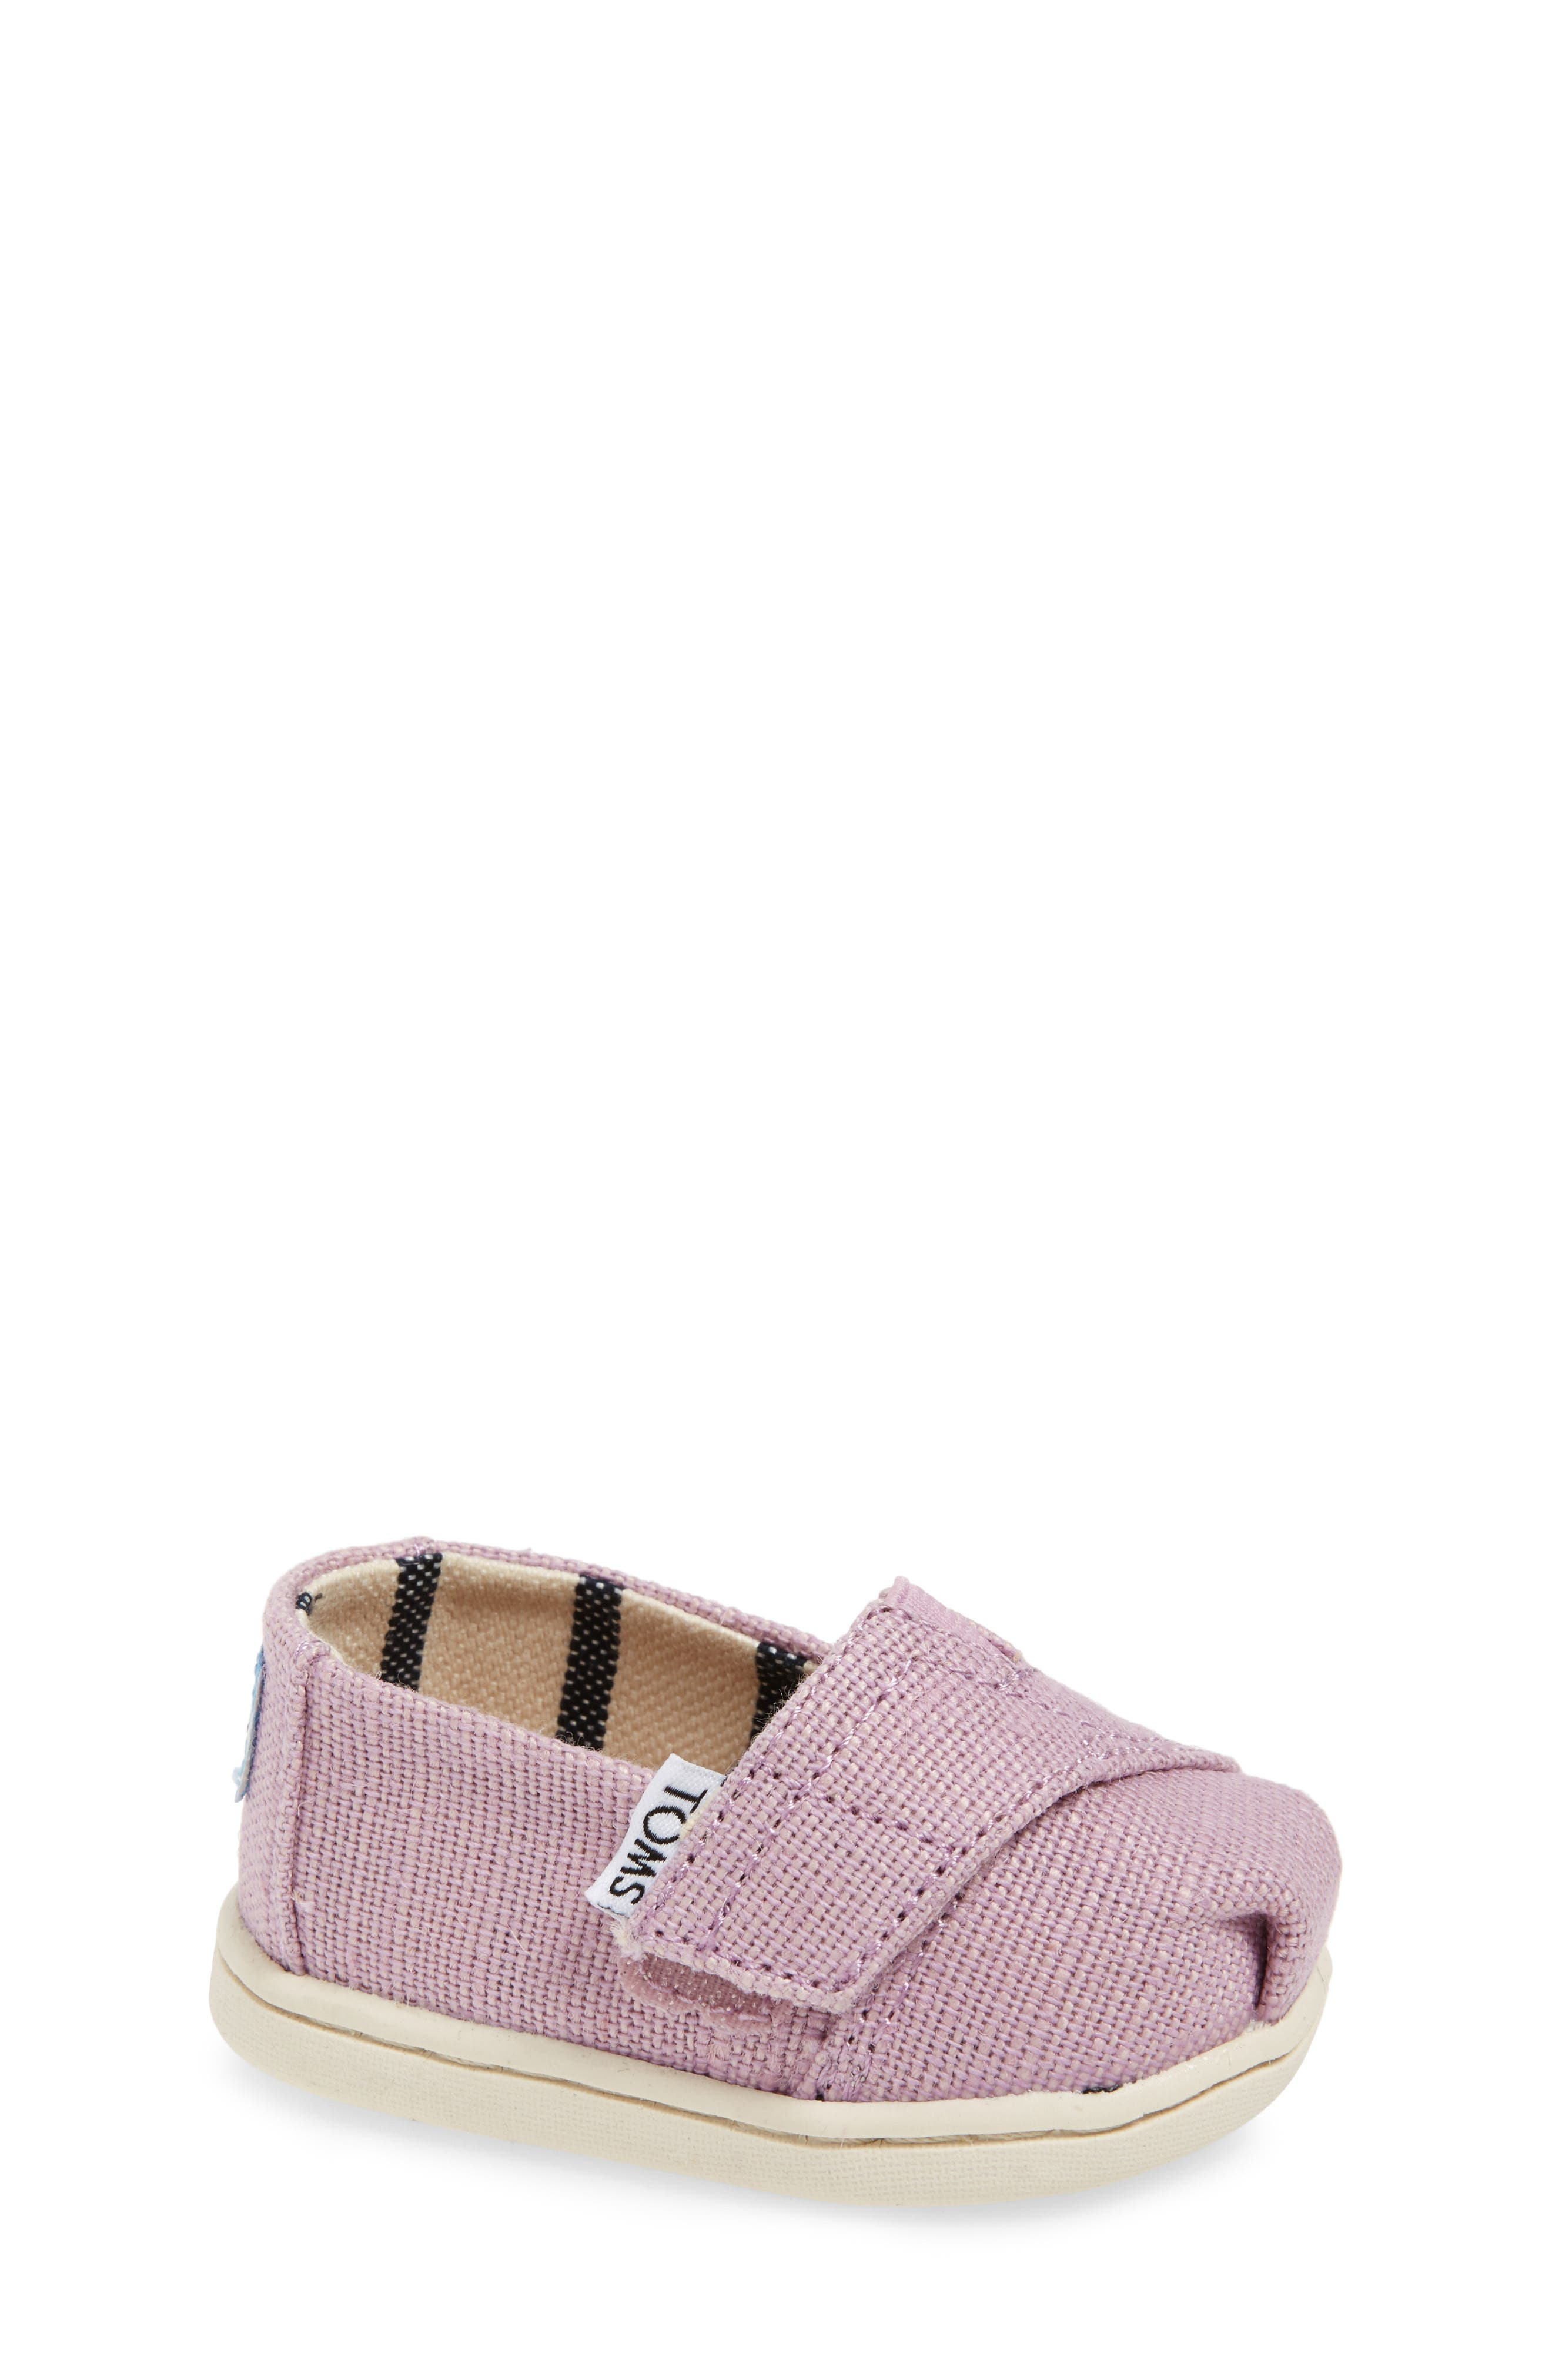 TOMS Easter Shop for Kids & Baby